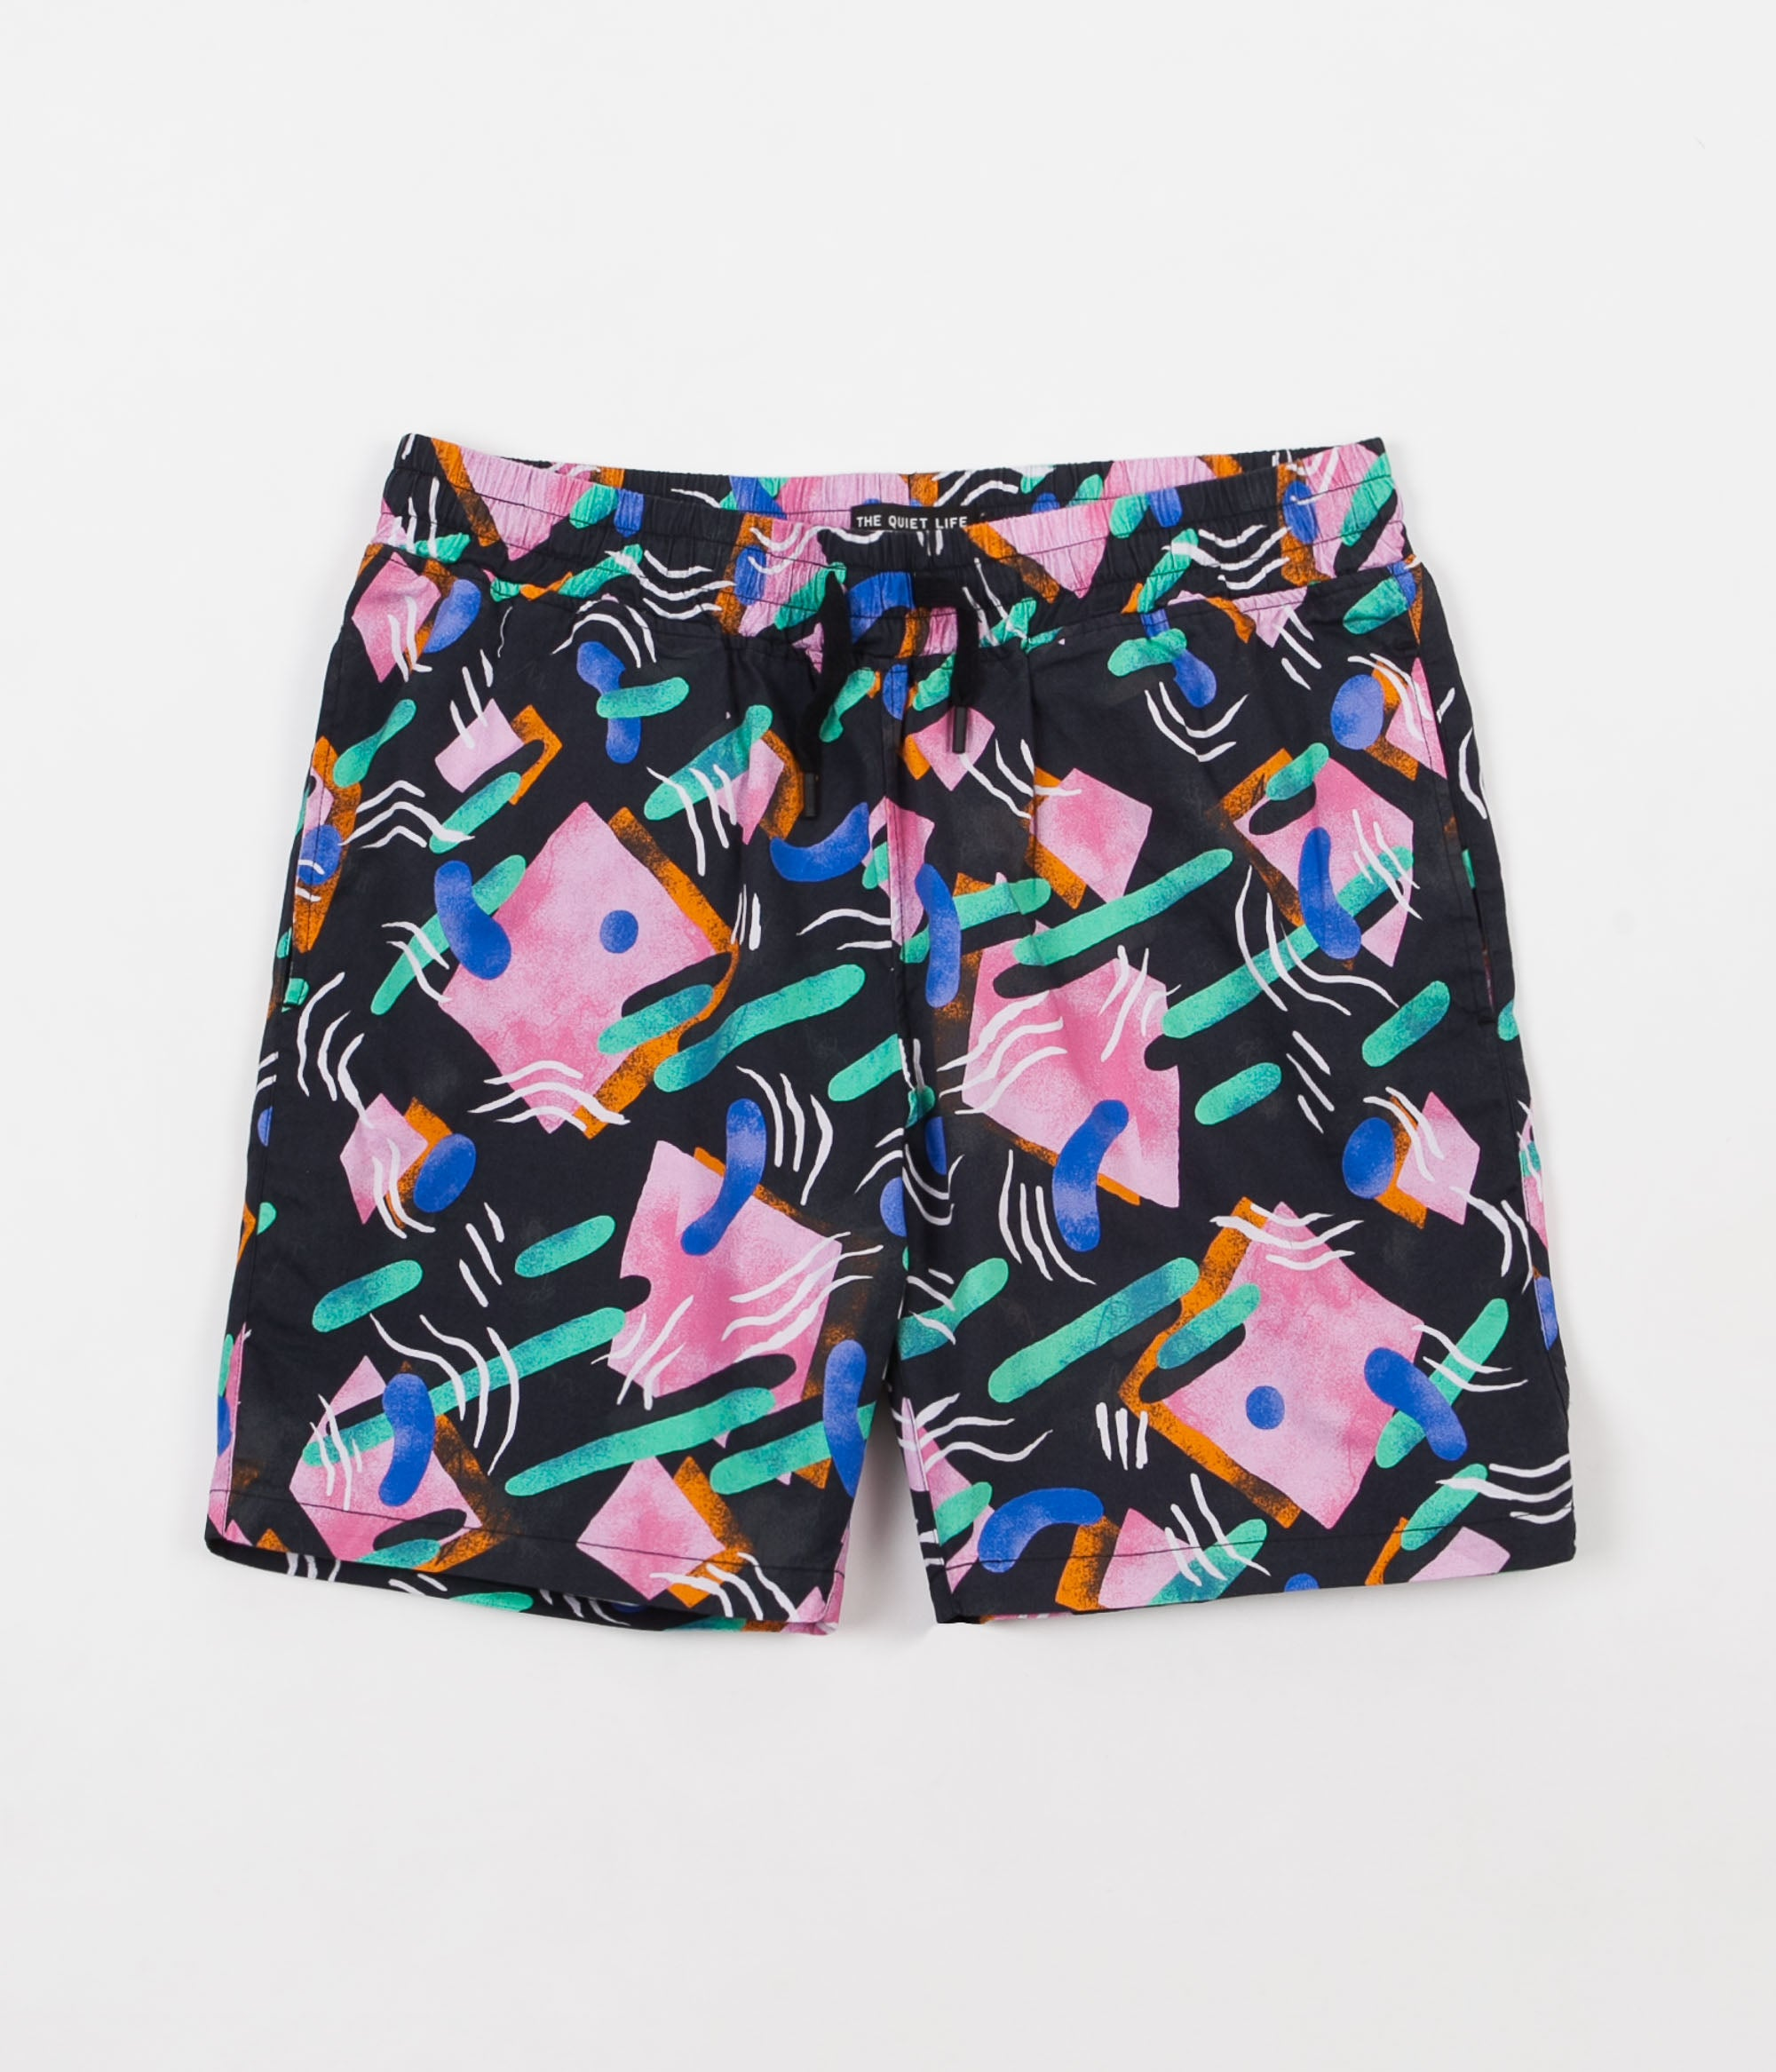 The Quiet Life Gibbler Beach Shorts - Black